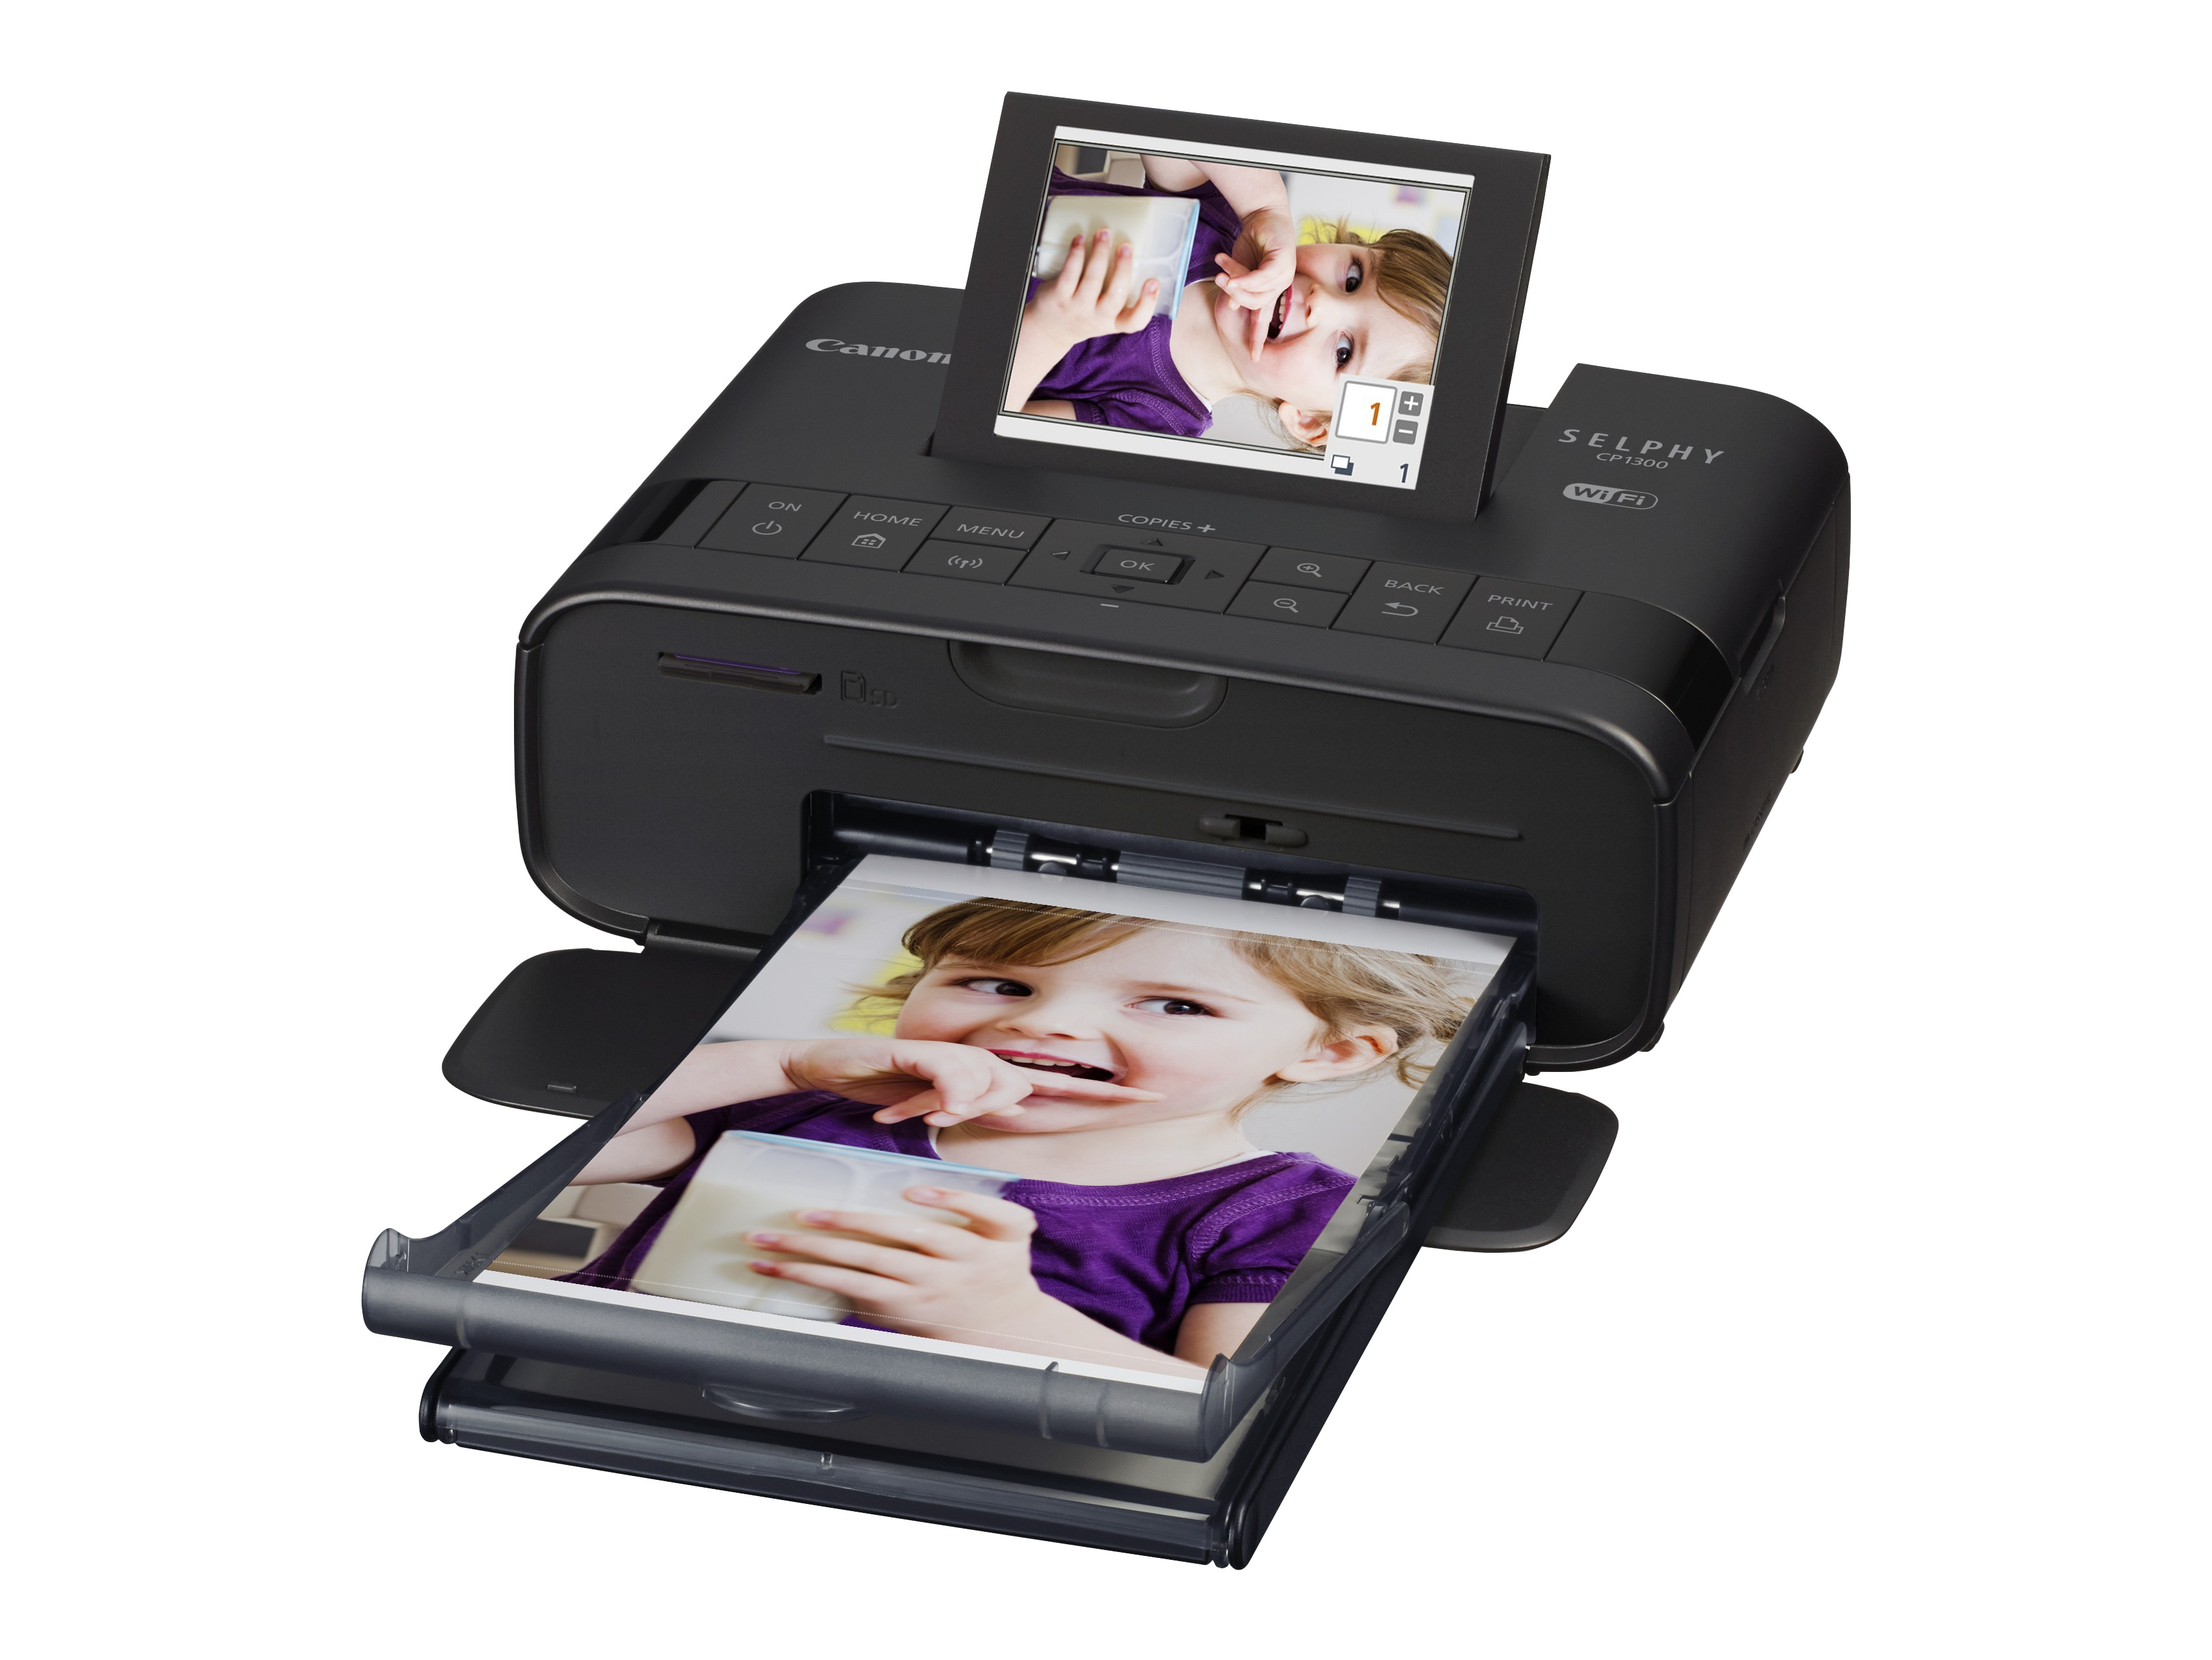 Canon SELPHY CP1300 - SD,SDHC,SDXC - Android,iOS - Wechselstrom/Batterie - 60 W - 4 W - 180,6 mm